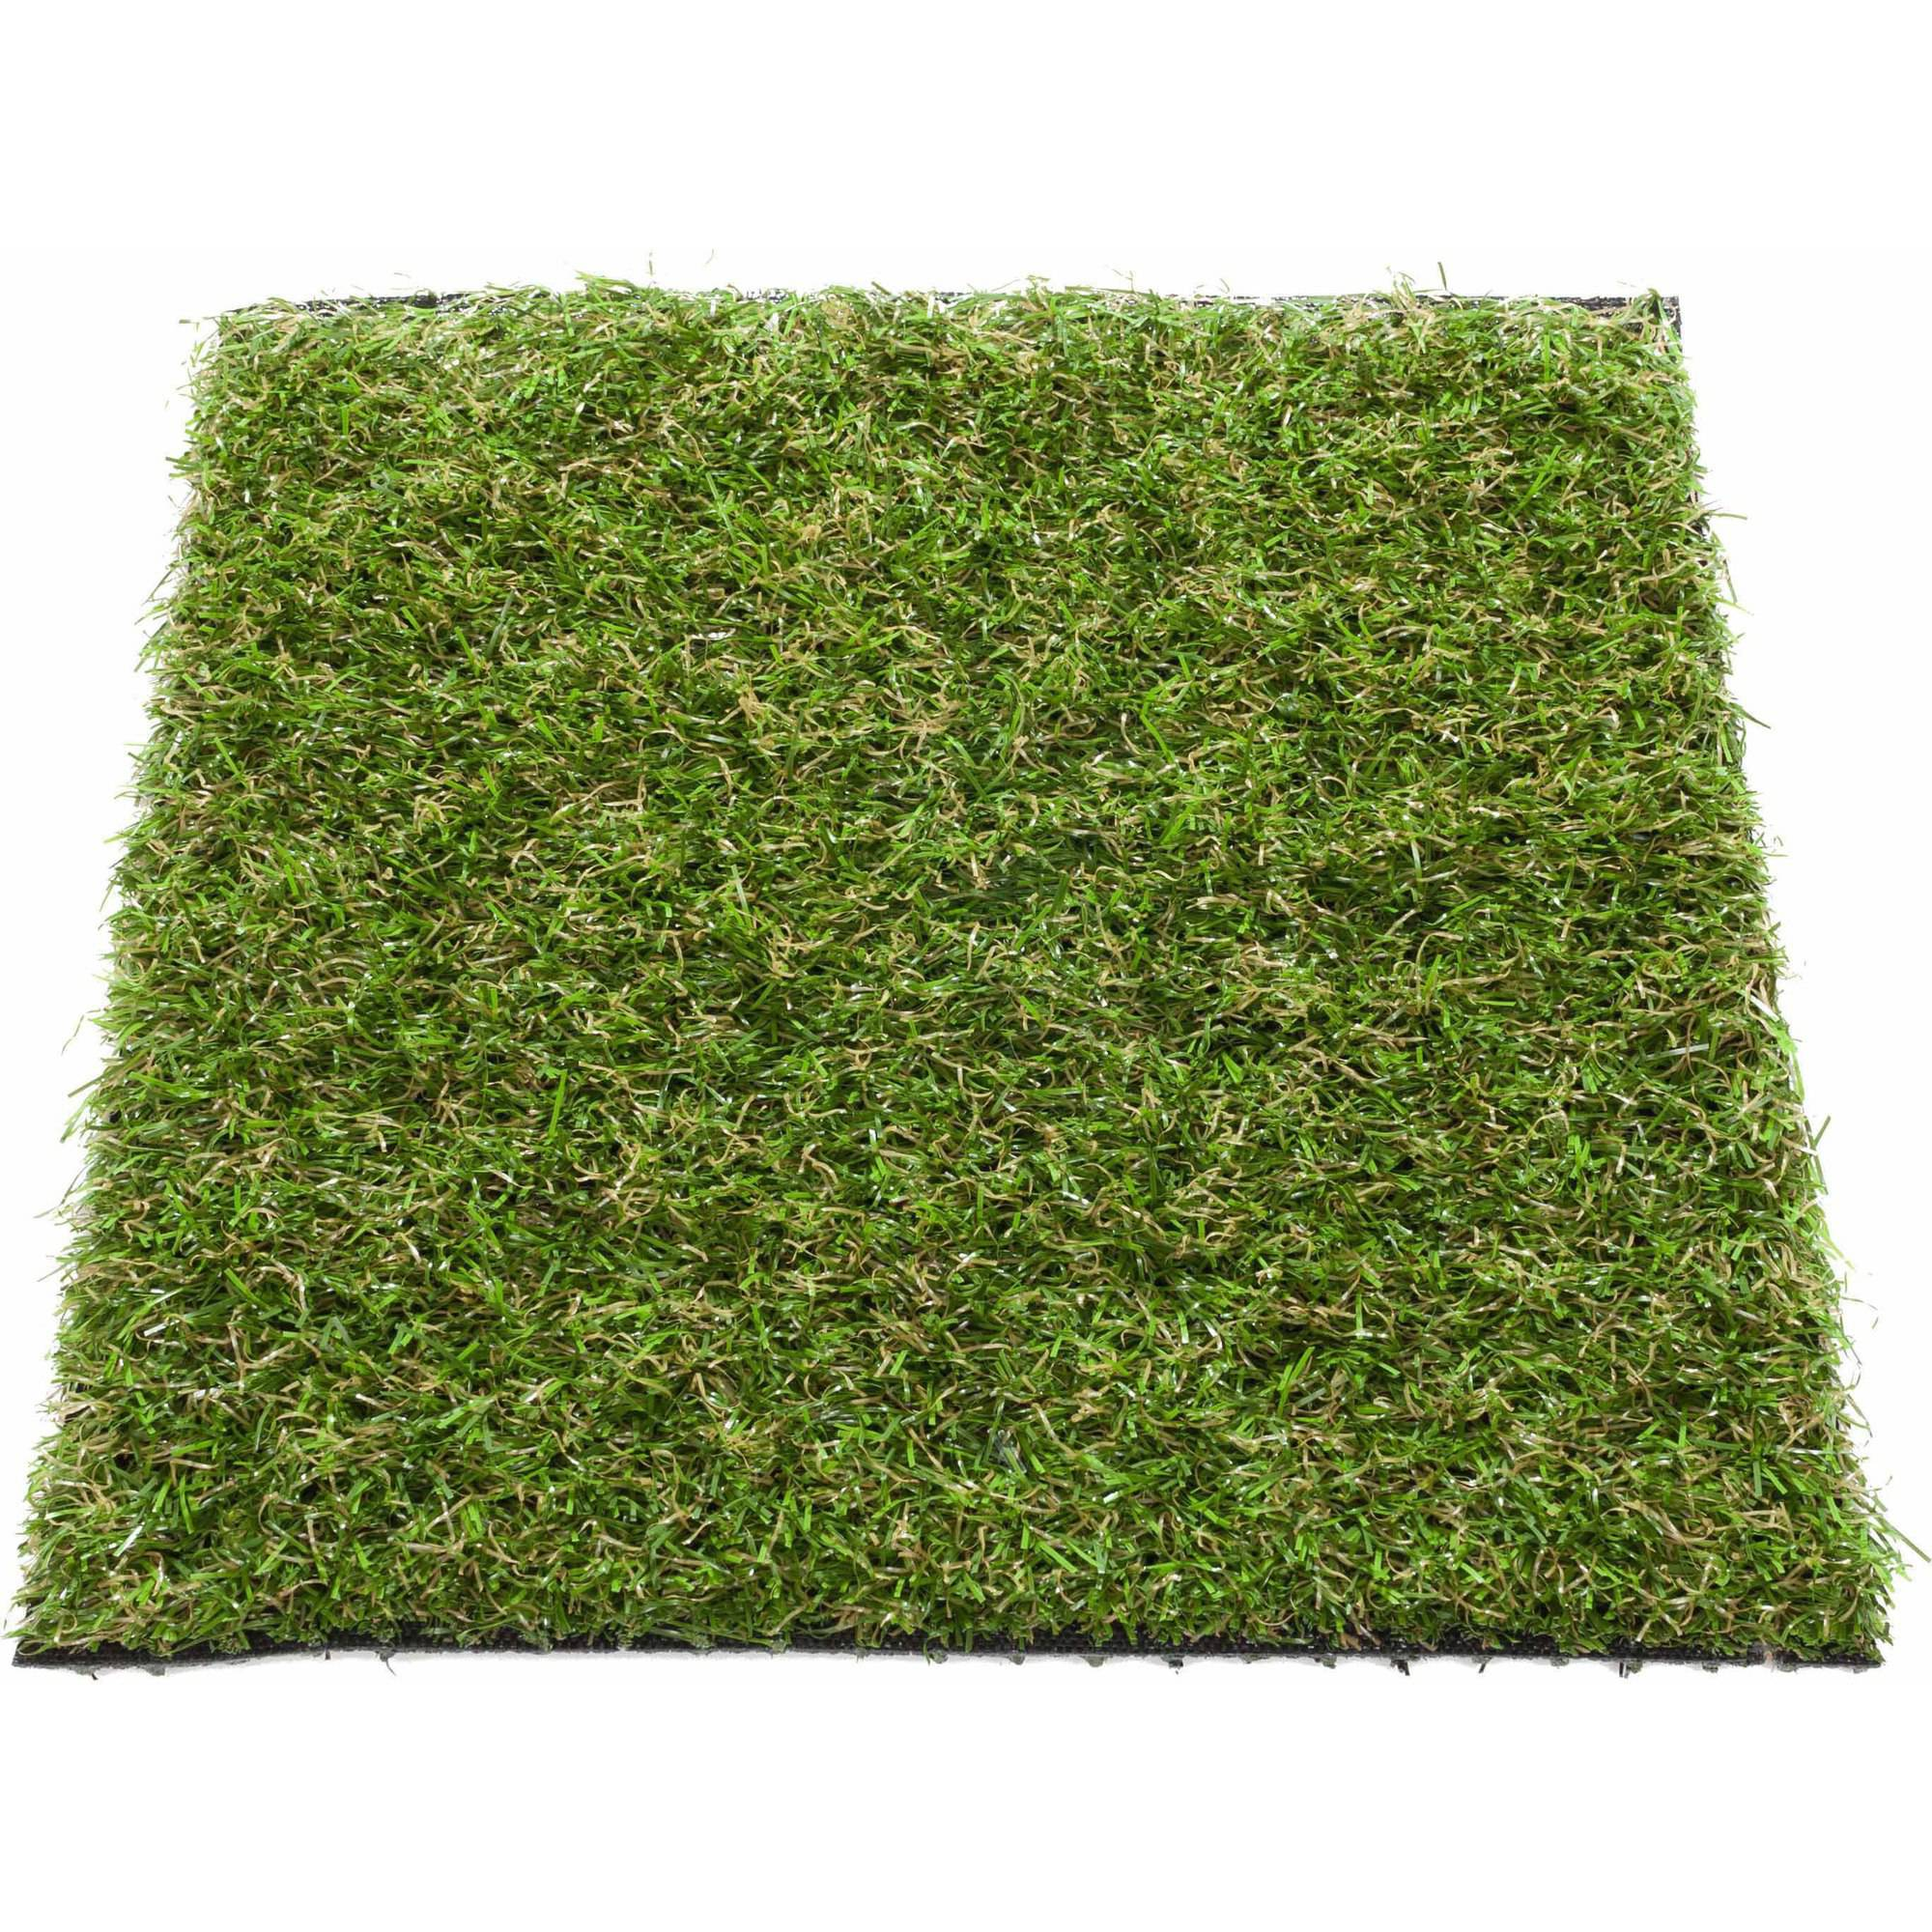 Better Homes and Gardens Outdoor 36in x 60in Faux Grass Rug